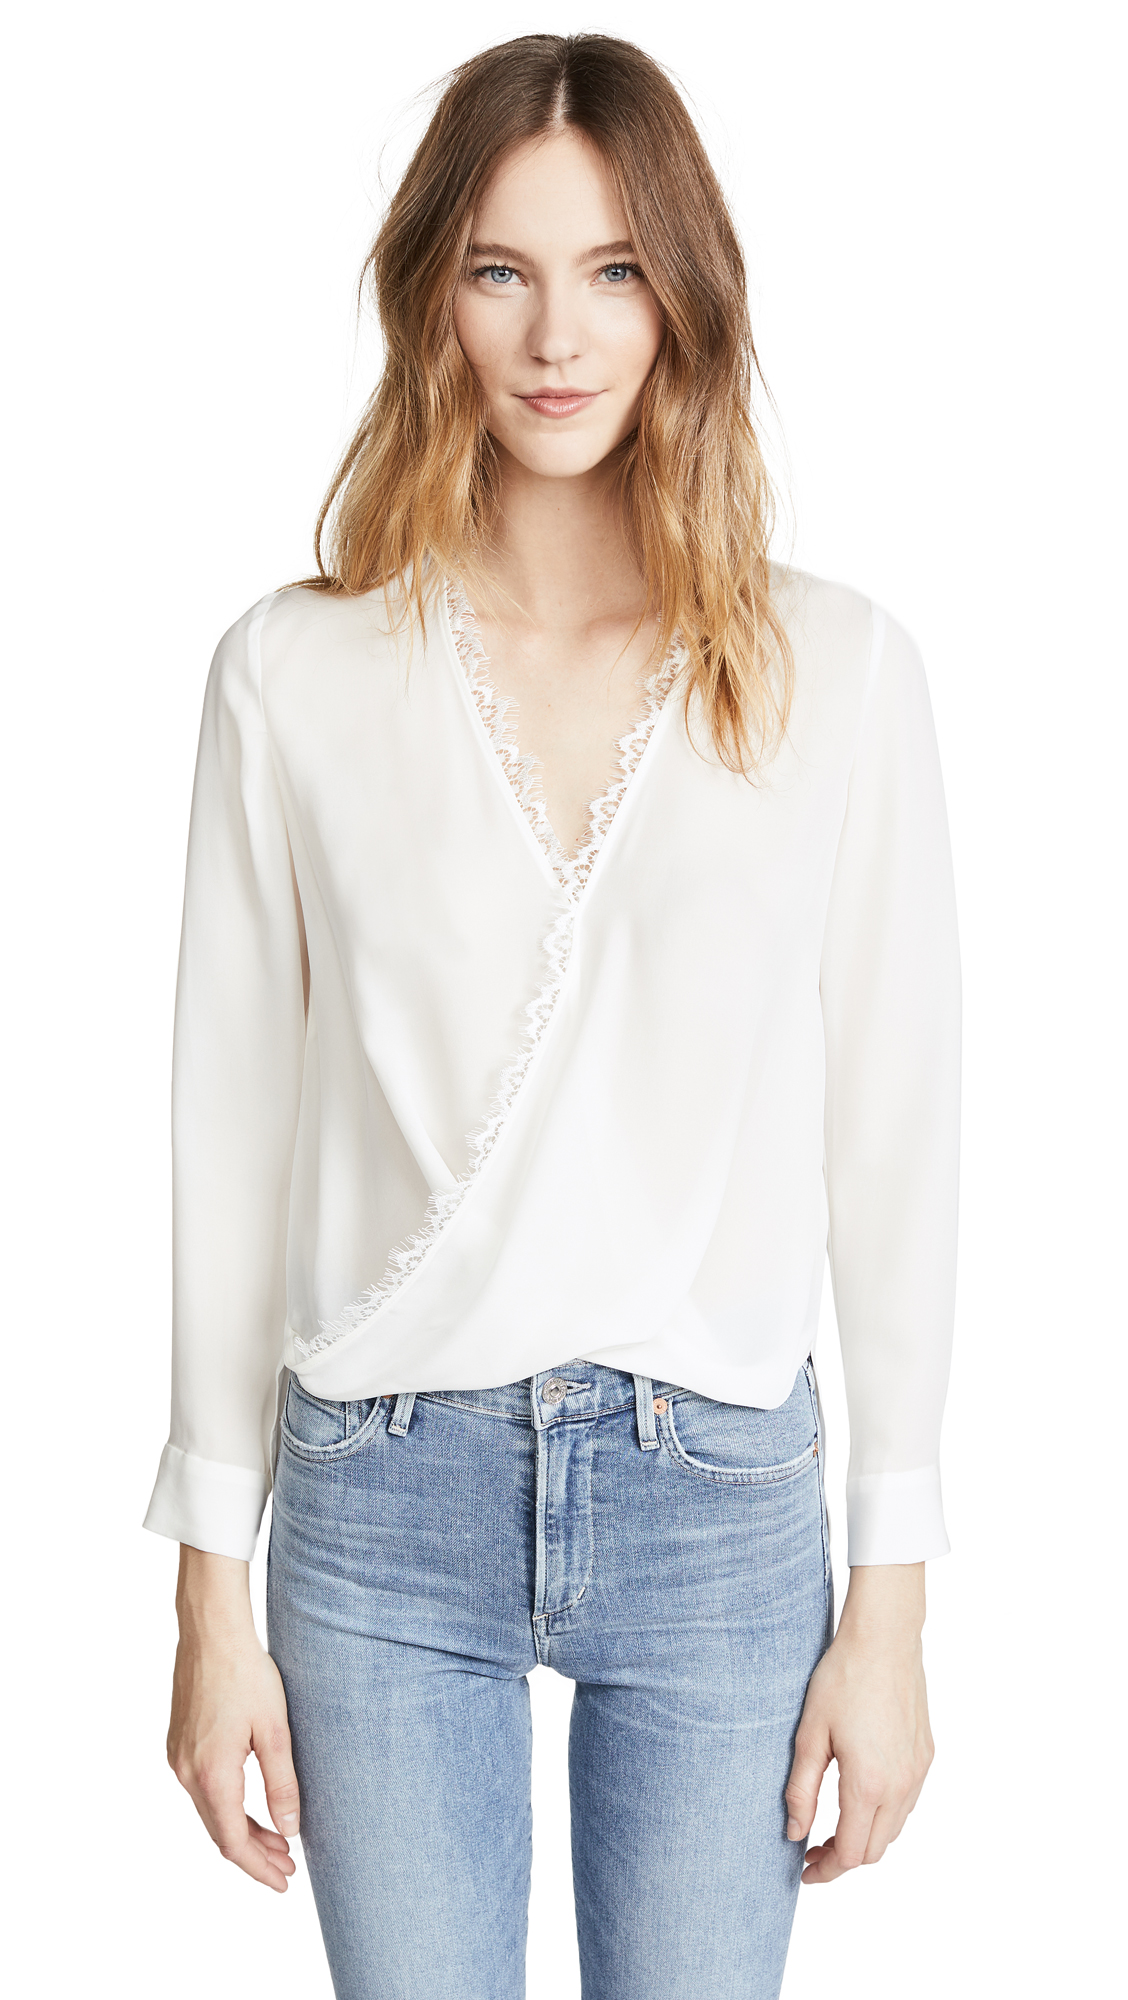 LAGENCE Rosario Blouse with Lace - Ivory/Ivory